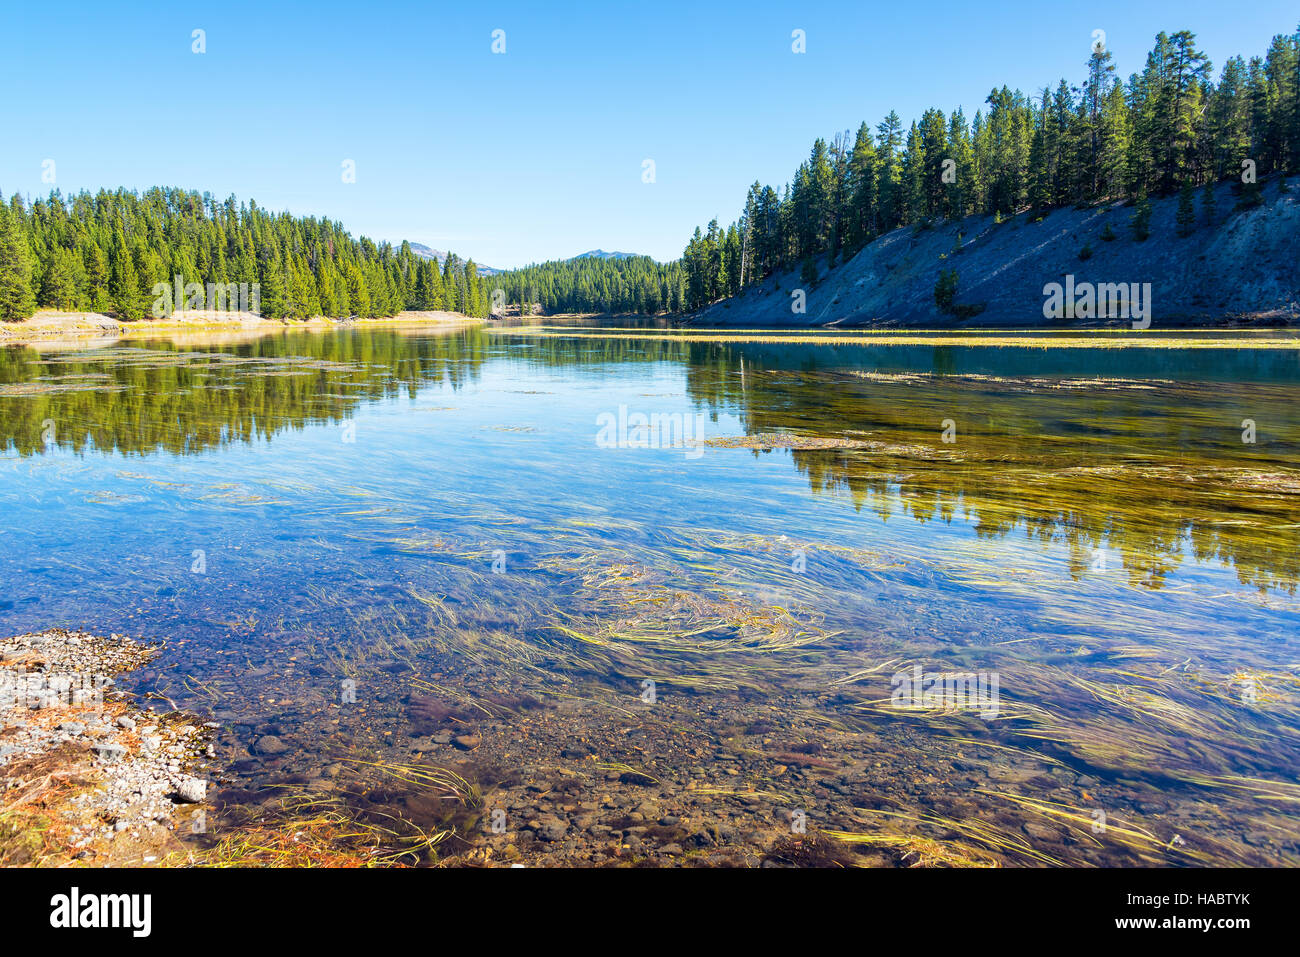 Yellowstone River landscape with beautiful forest reflection in Yellowstone National Park - Stock Image